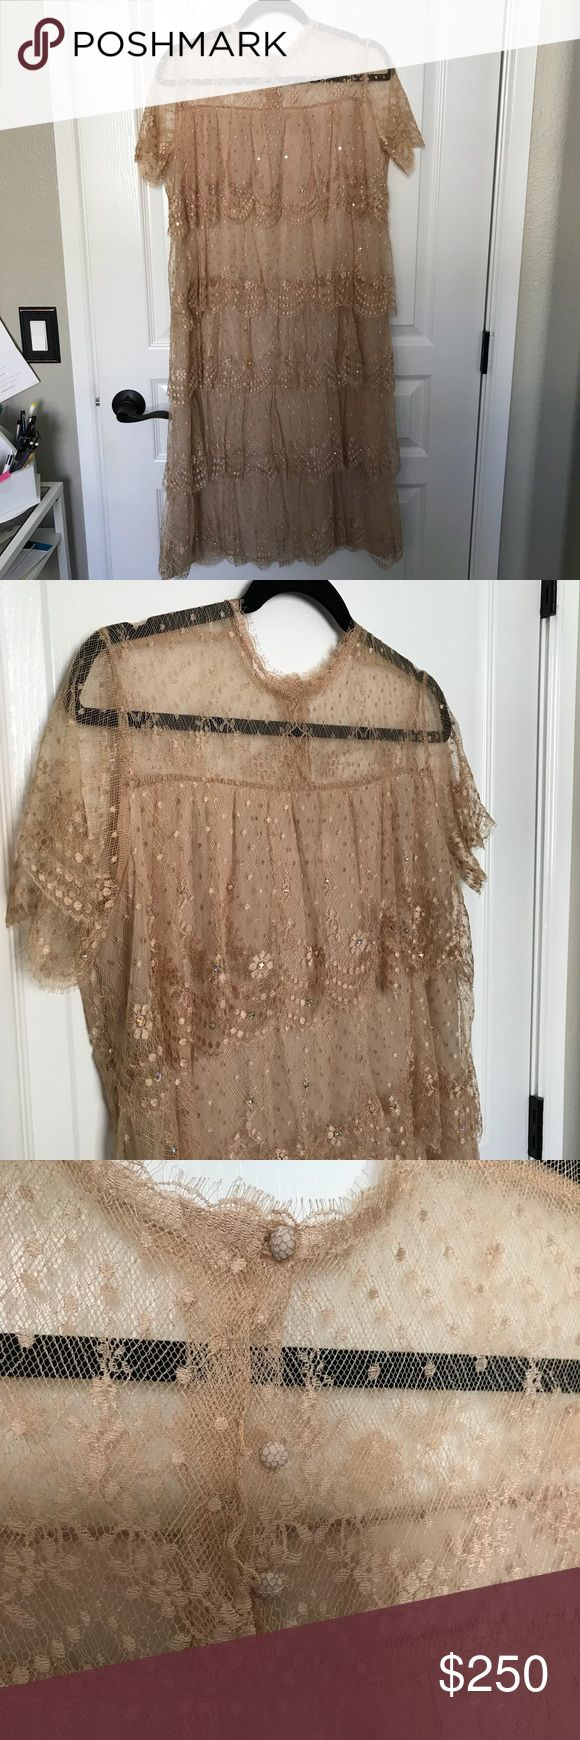 """Vintage French Lace Tan Tiered 1920s Flapper Dress French lace tiered dress from Rina di'Montella for Neiman Marcus. Features layers of soft flowy blush/nude lace with small crystal details. Snap button closure at the neck is hidden by small lace buttons. Fully lined and each lace layer is separate so it has beautiful movement. Perfect for a wedding, vow renewal, themed party, or special occasion. Length: 42"""" Bust: 18"""" Says size 14 but this is a vintage piece, size is more between 8-10. Feel…"""